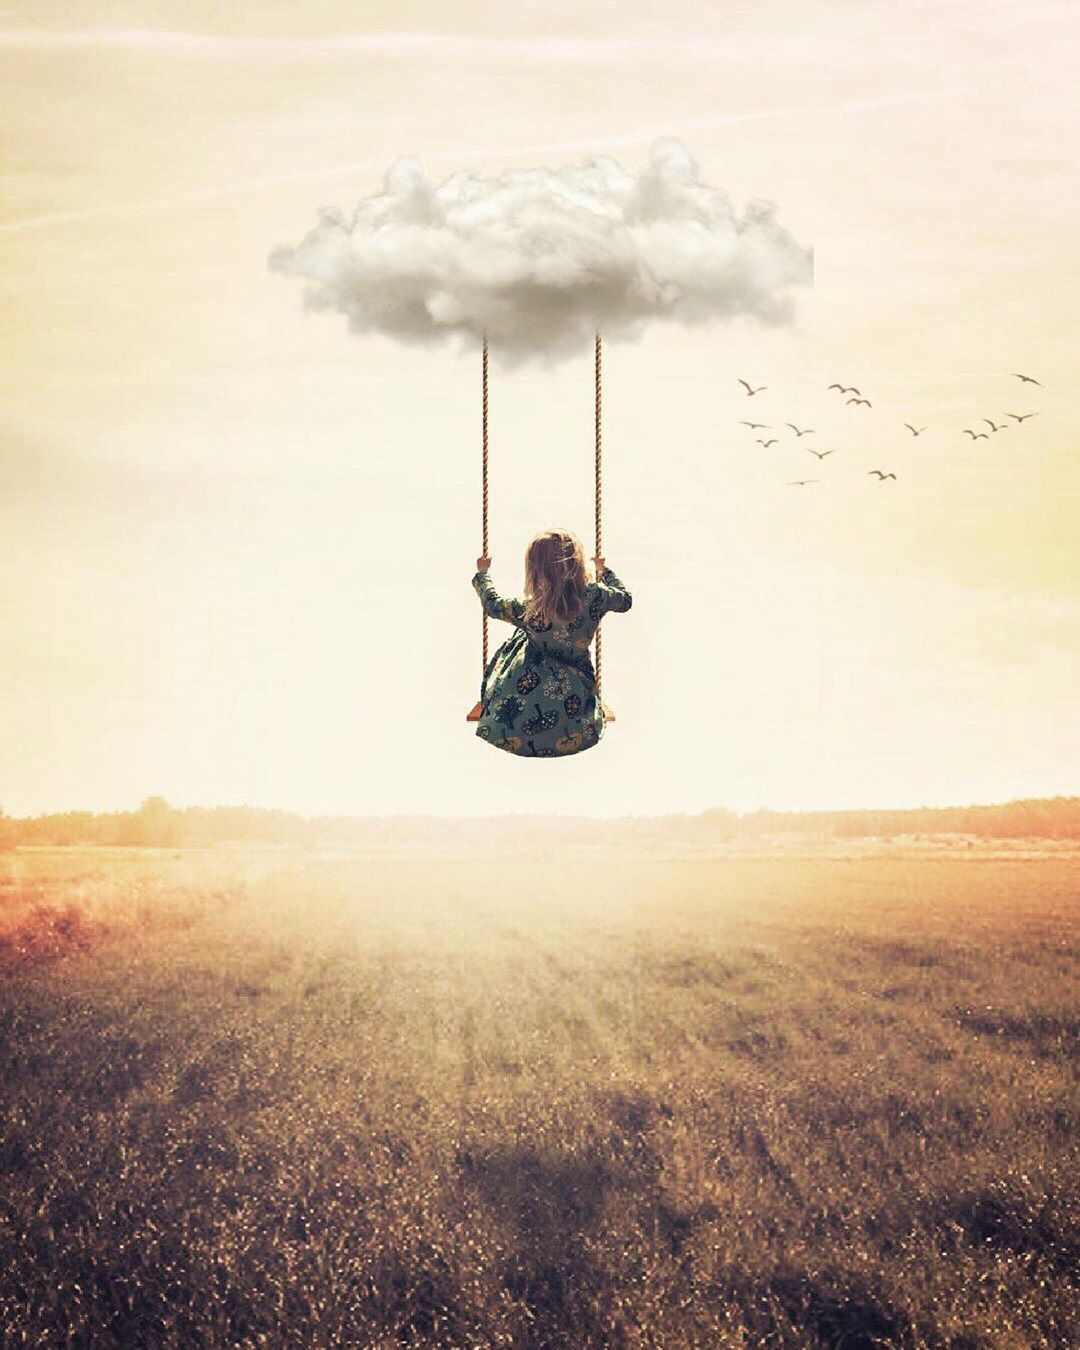 Swinging in the clouds | Instagram, Faceless portrait, Creative challenge